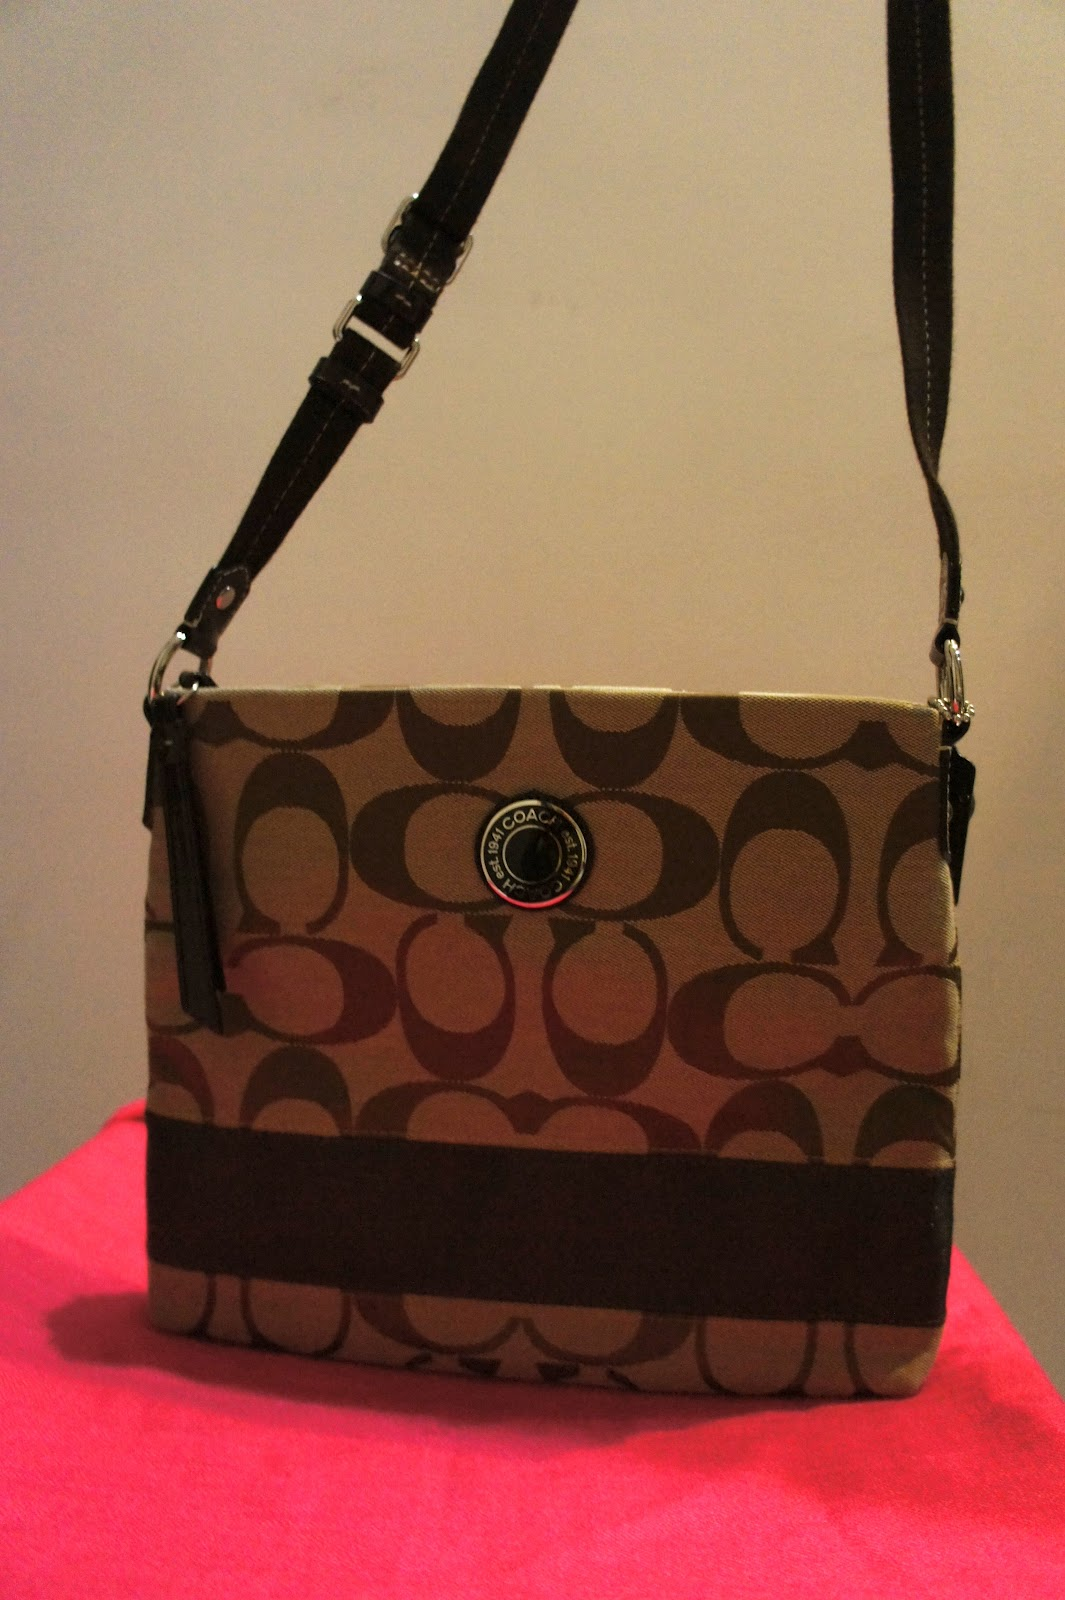 Queen's closet: Coach sling bag @ $240 - brown (SOLD)